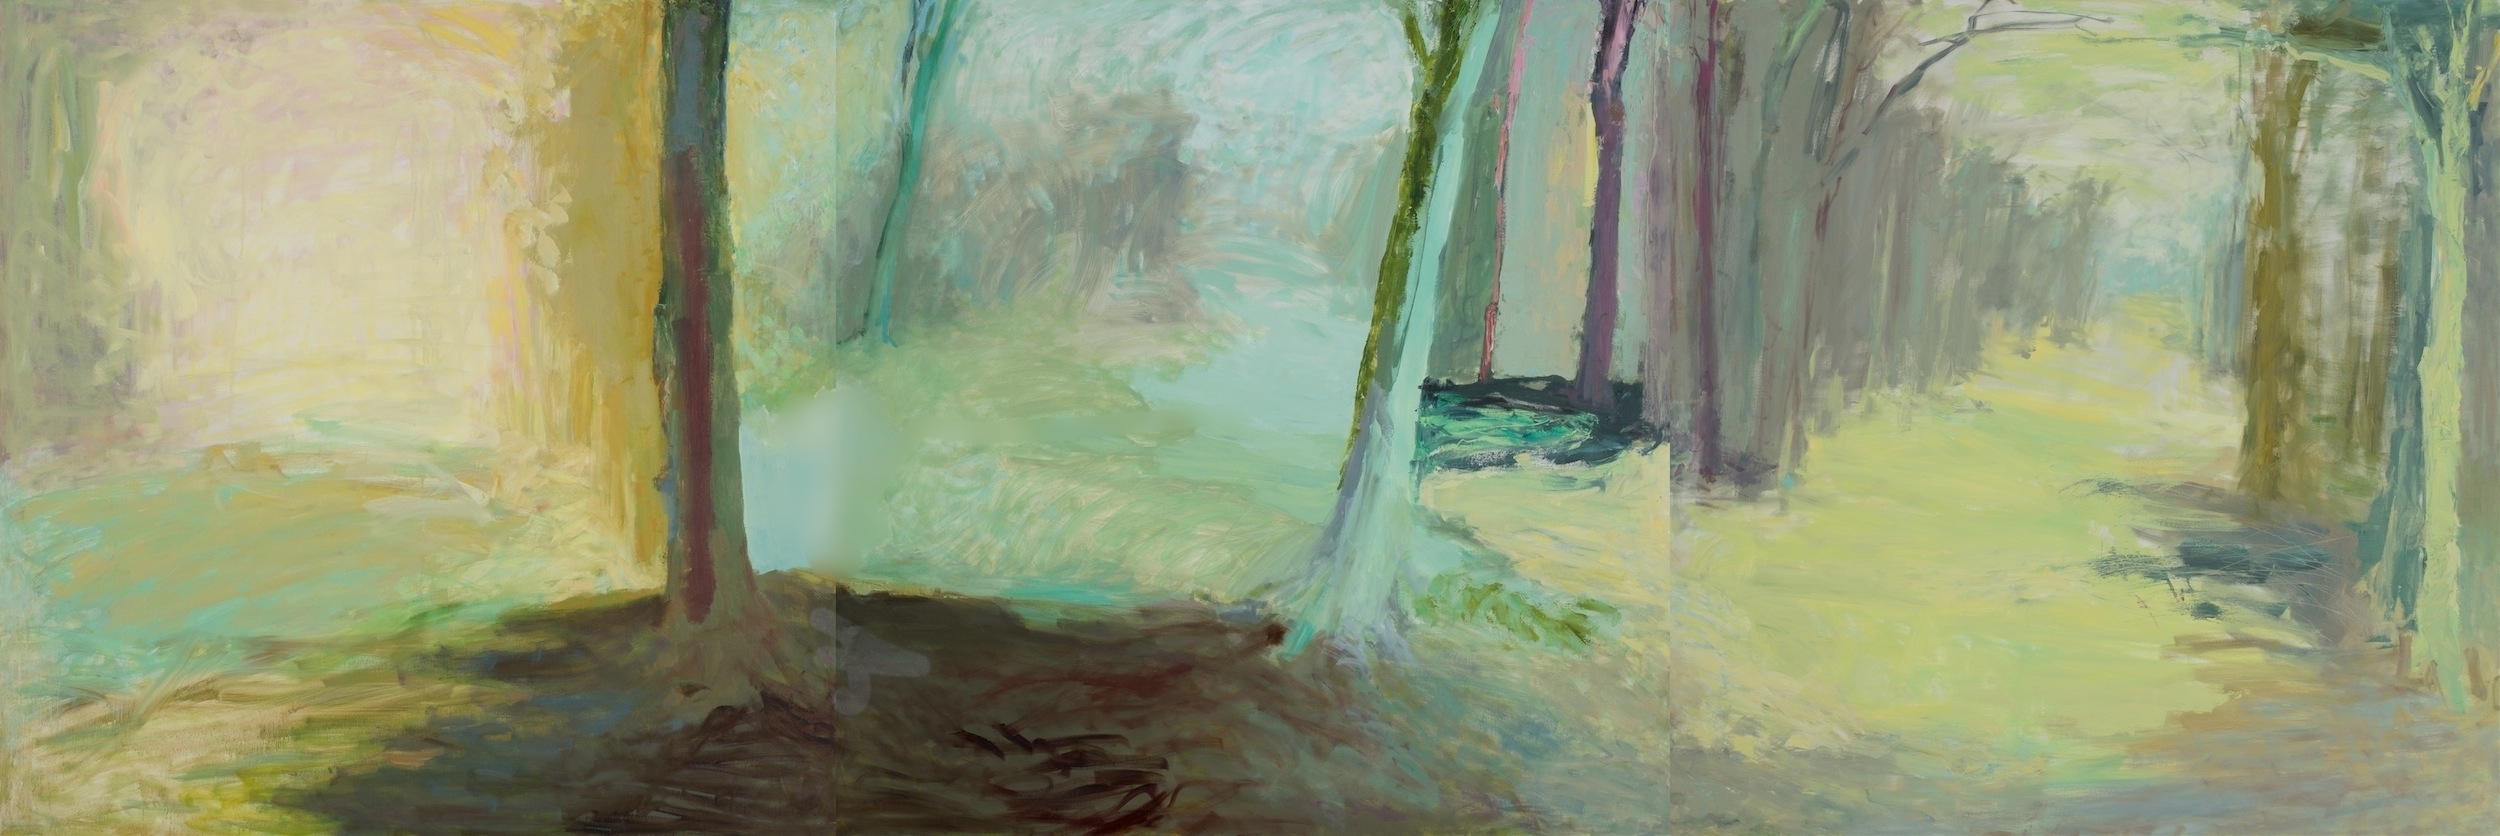 """sing sing through the darkened dream    (oil on three canvases)   48""""x144"""""""